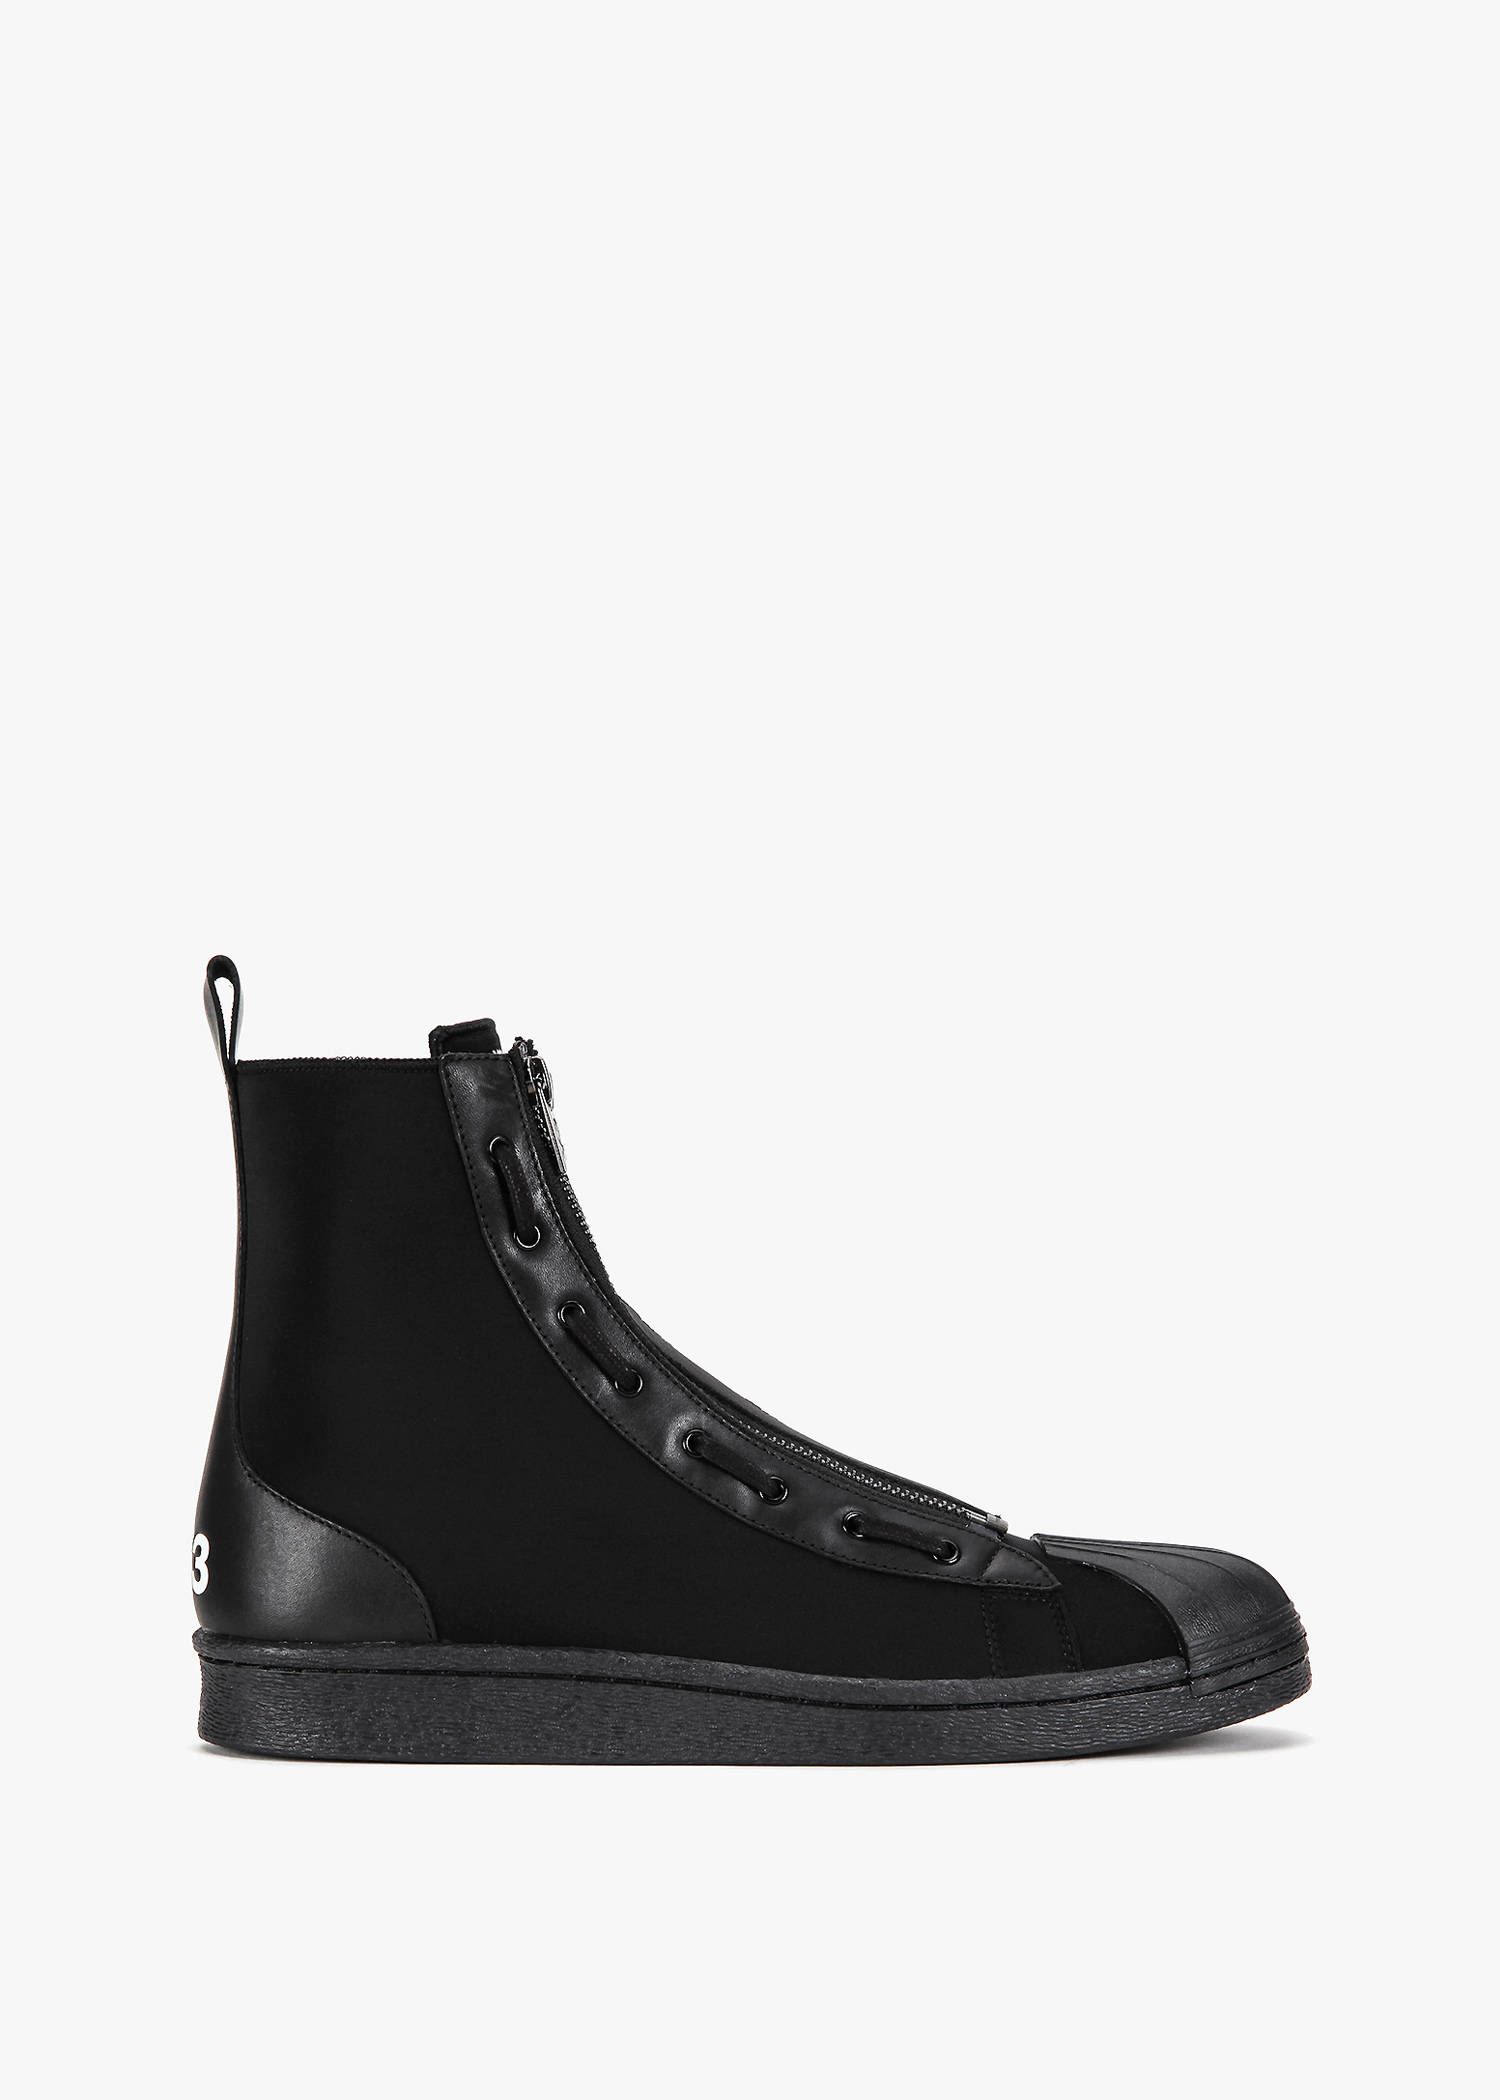 Y-3 Pro Zip High Top Sneaker In Core Black/Core Black/Core Black